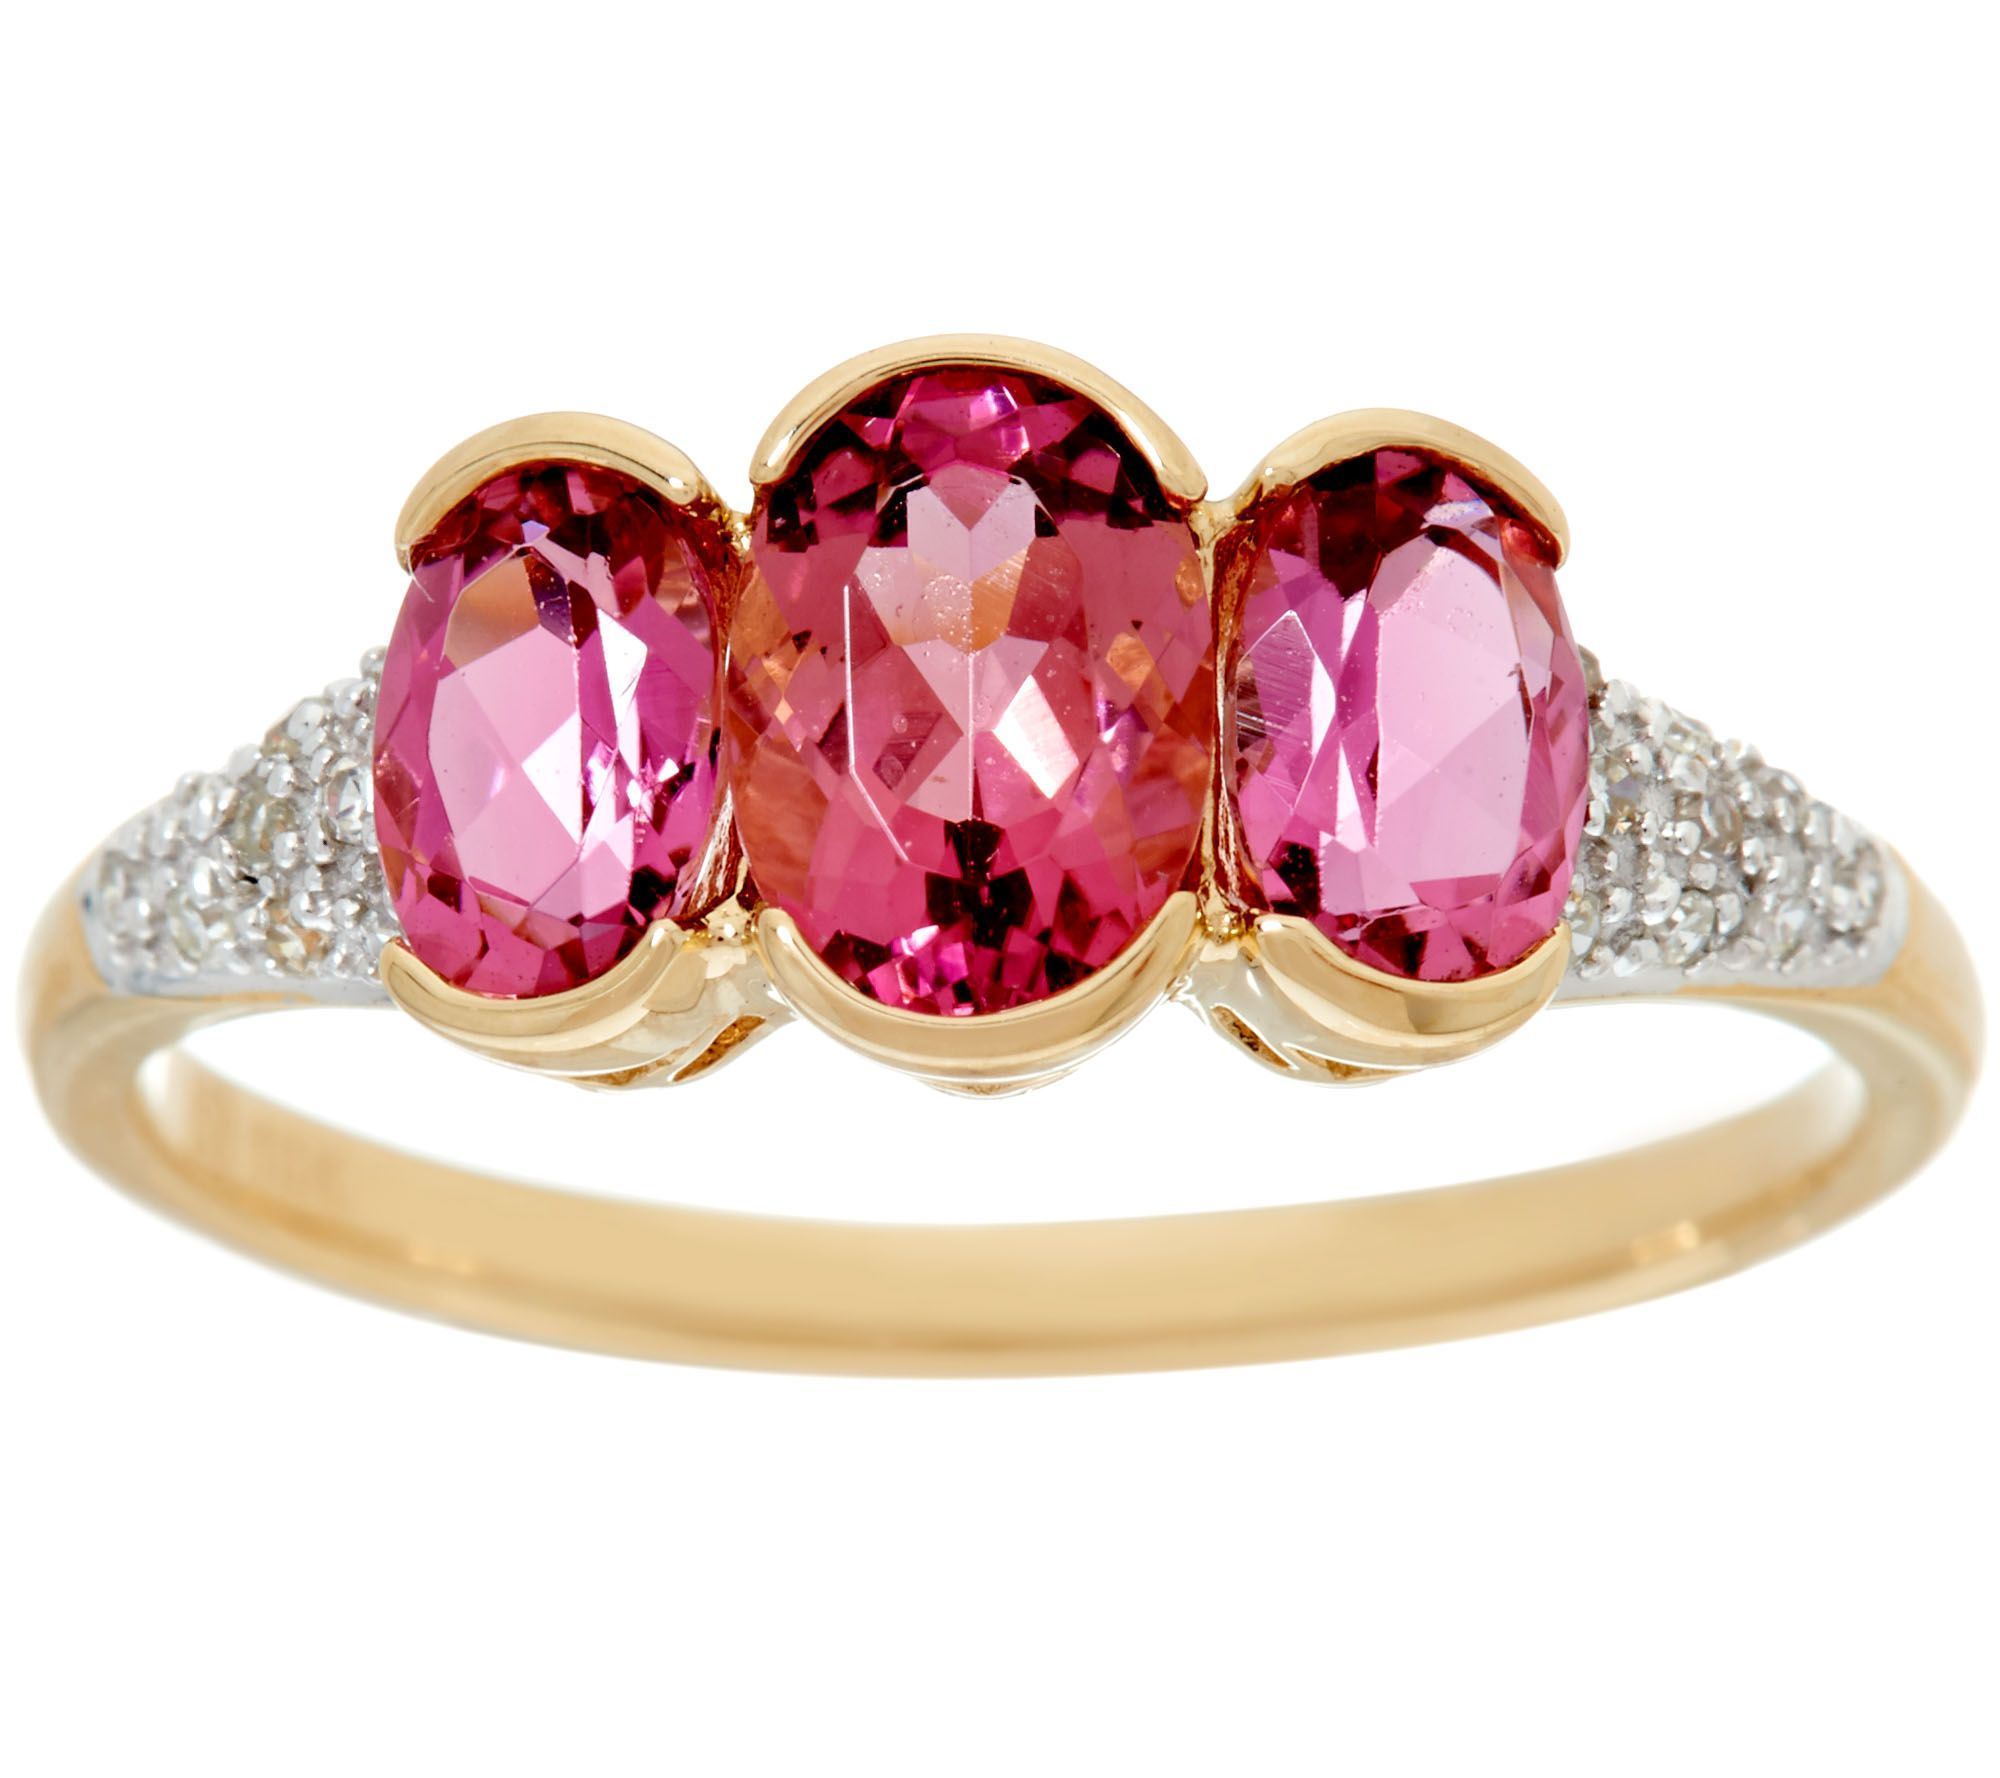 Pink Tourmaline & Diamond 3-Stone Ring 14K Gold 1.50 cttw - Page 1 ...